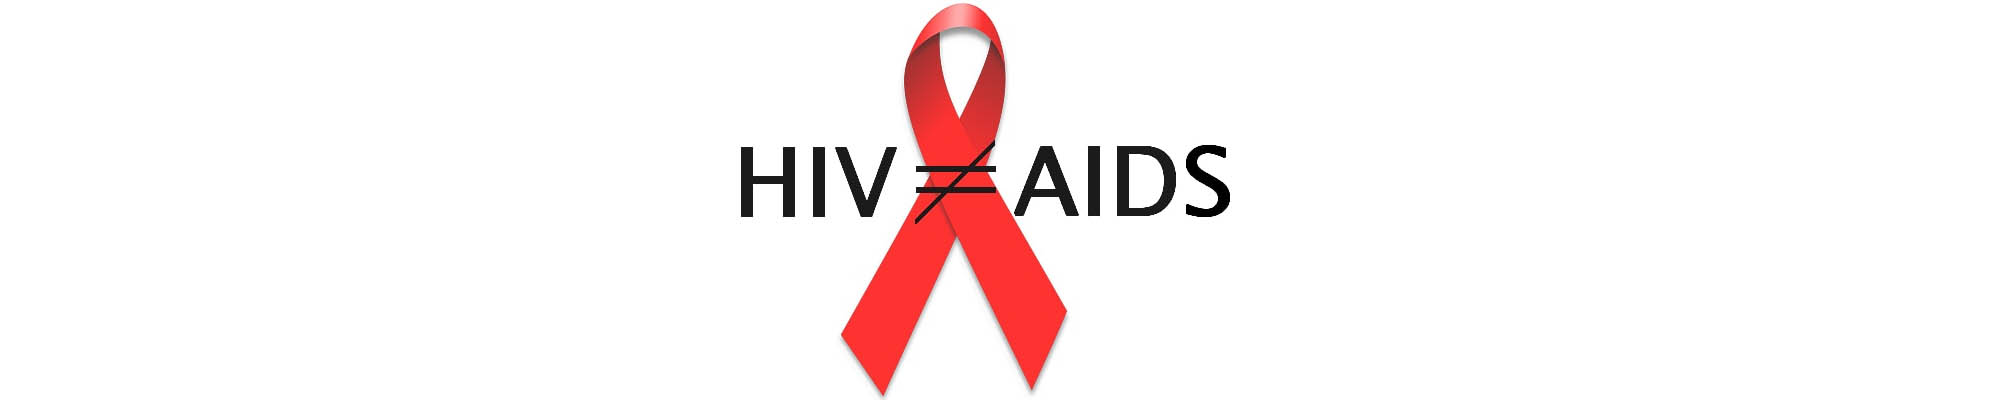 MEDICAL RESEARCH AGAINST HIV/AIDS